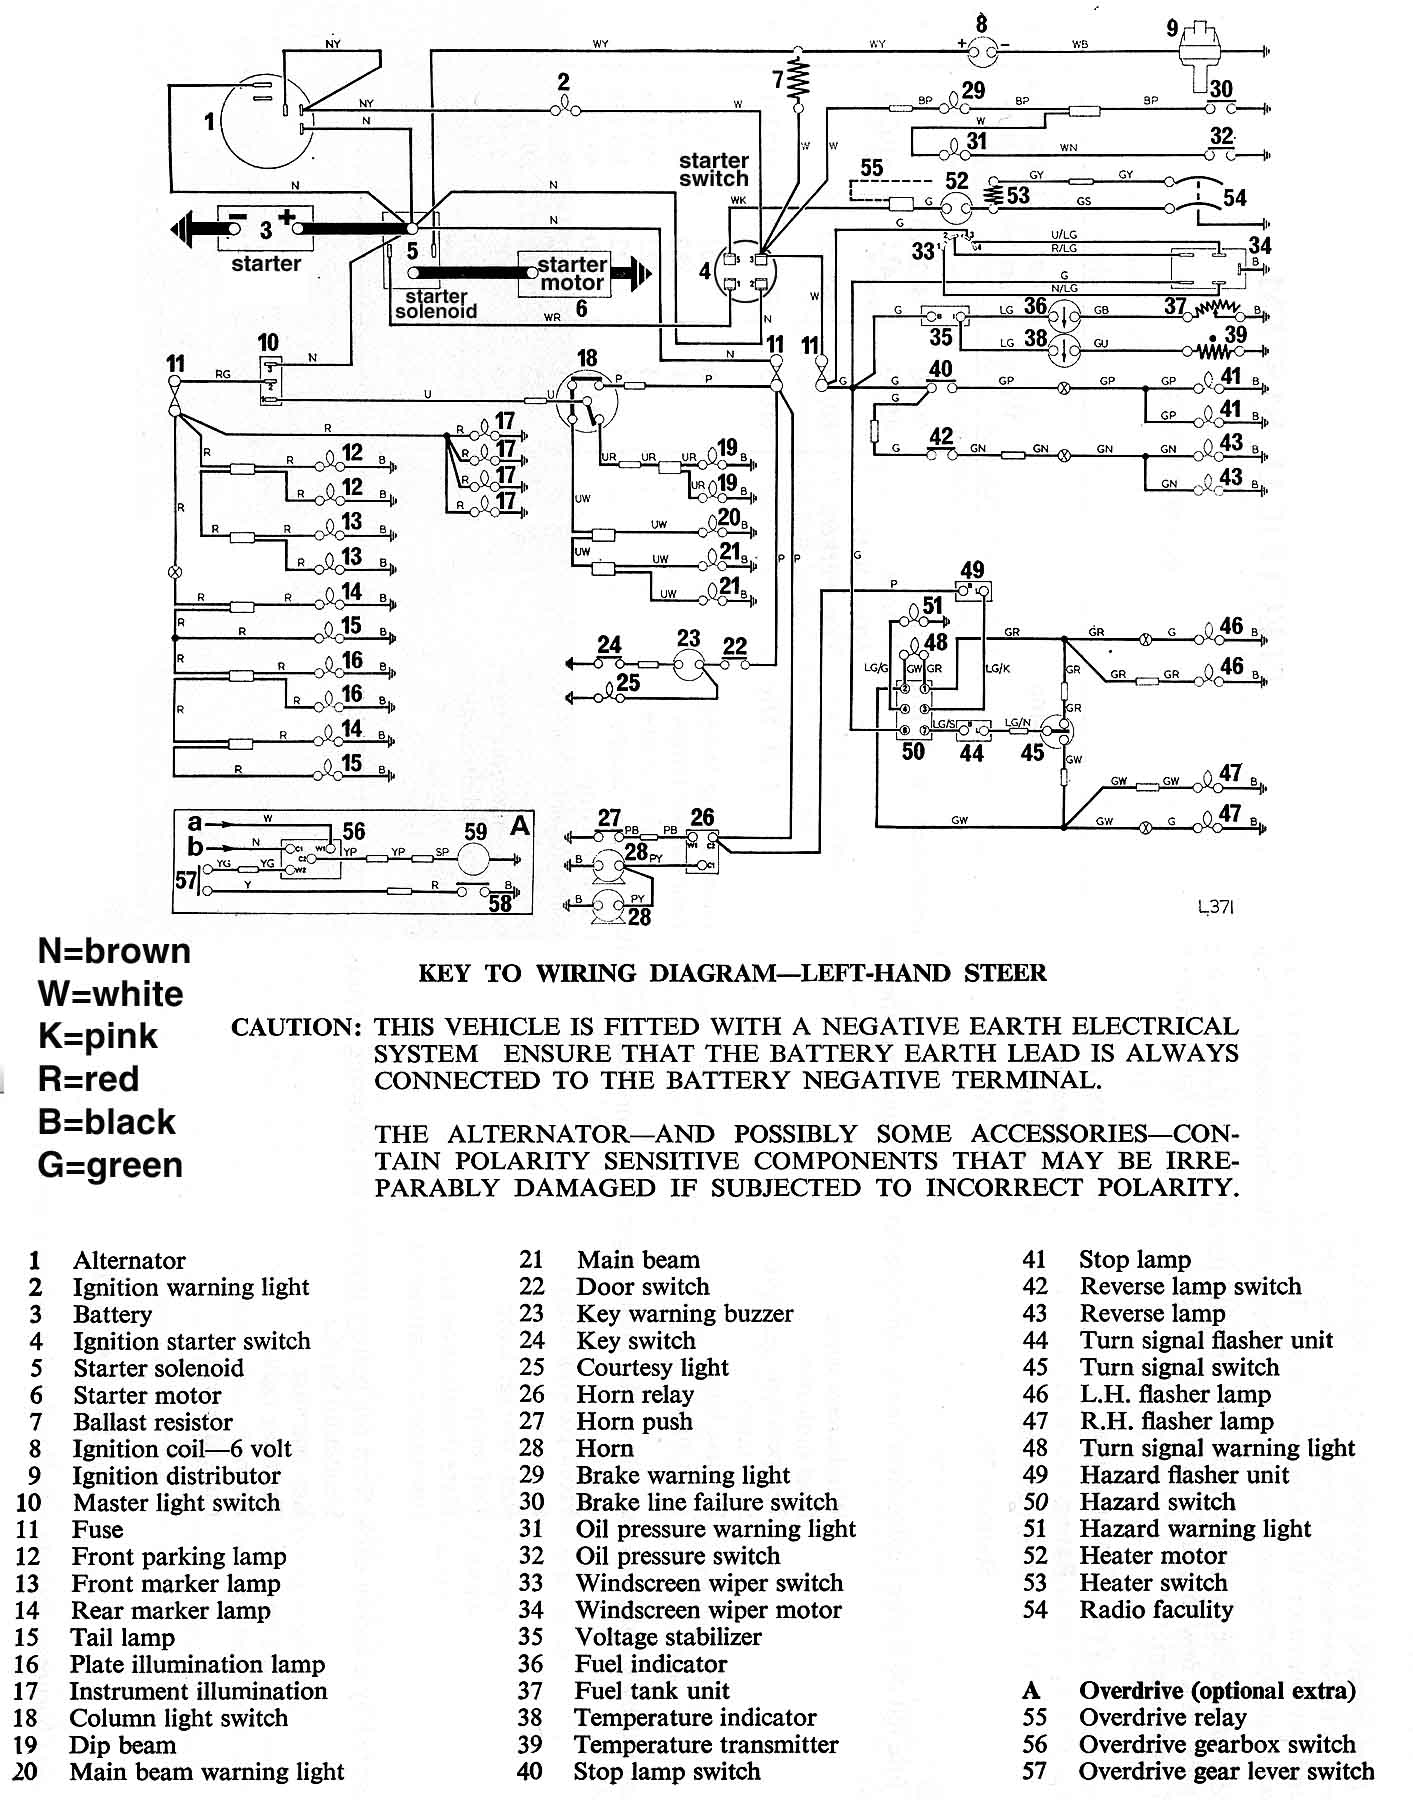 Heater Wiring Diagram 1973 Reinvent Your Ac Light Switch Schematics And Diagrams Triumph Spitfire Gt6 Herald Rh Triumphspitfire Com Fzj80